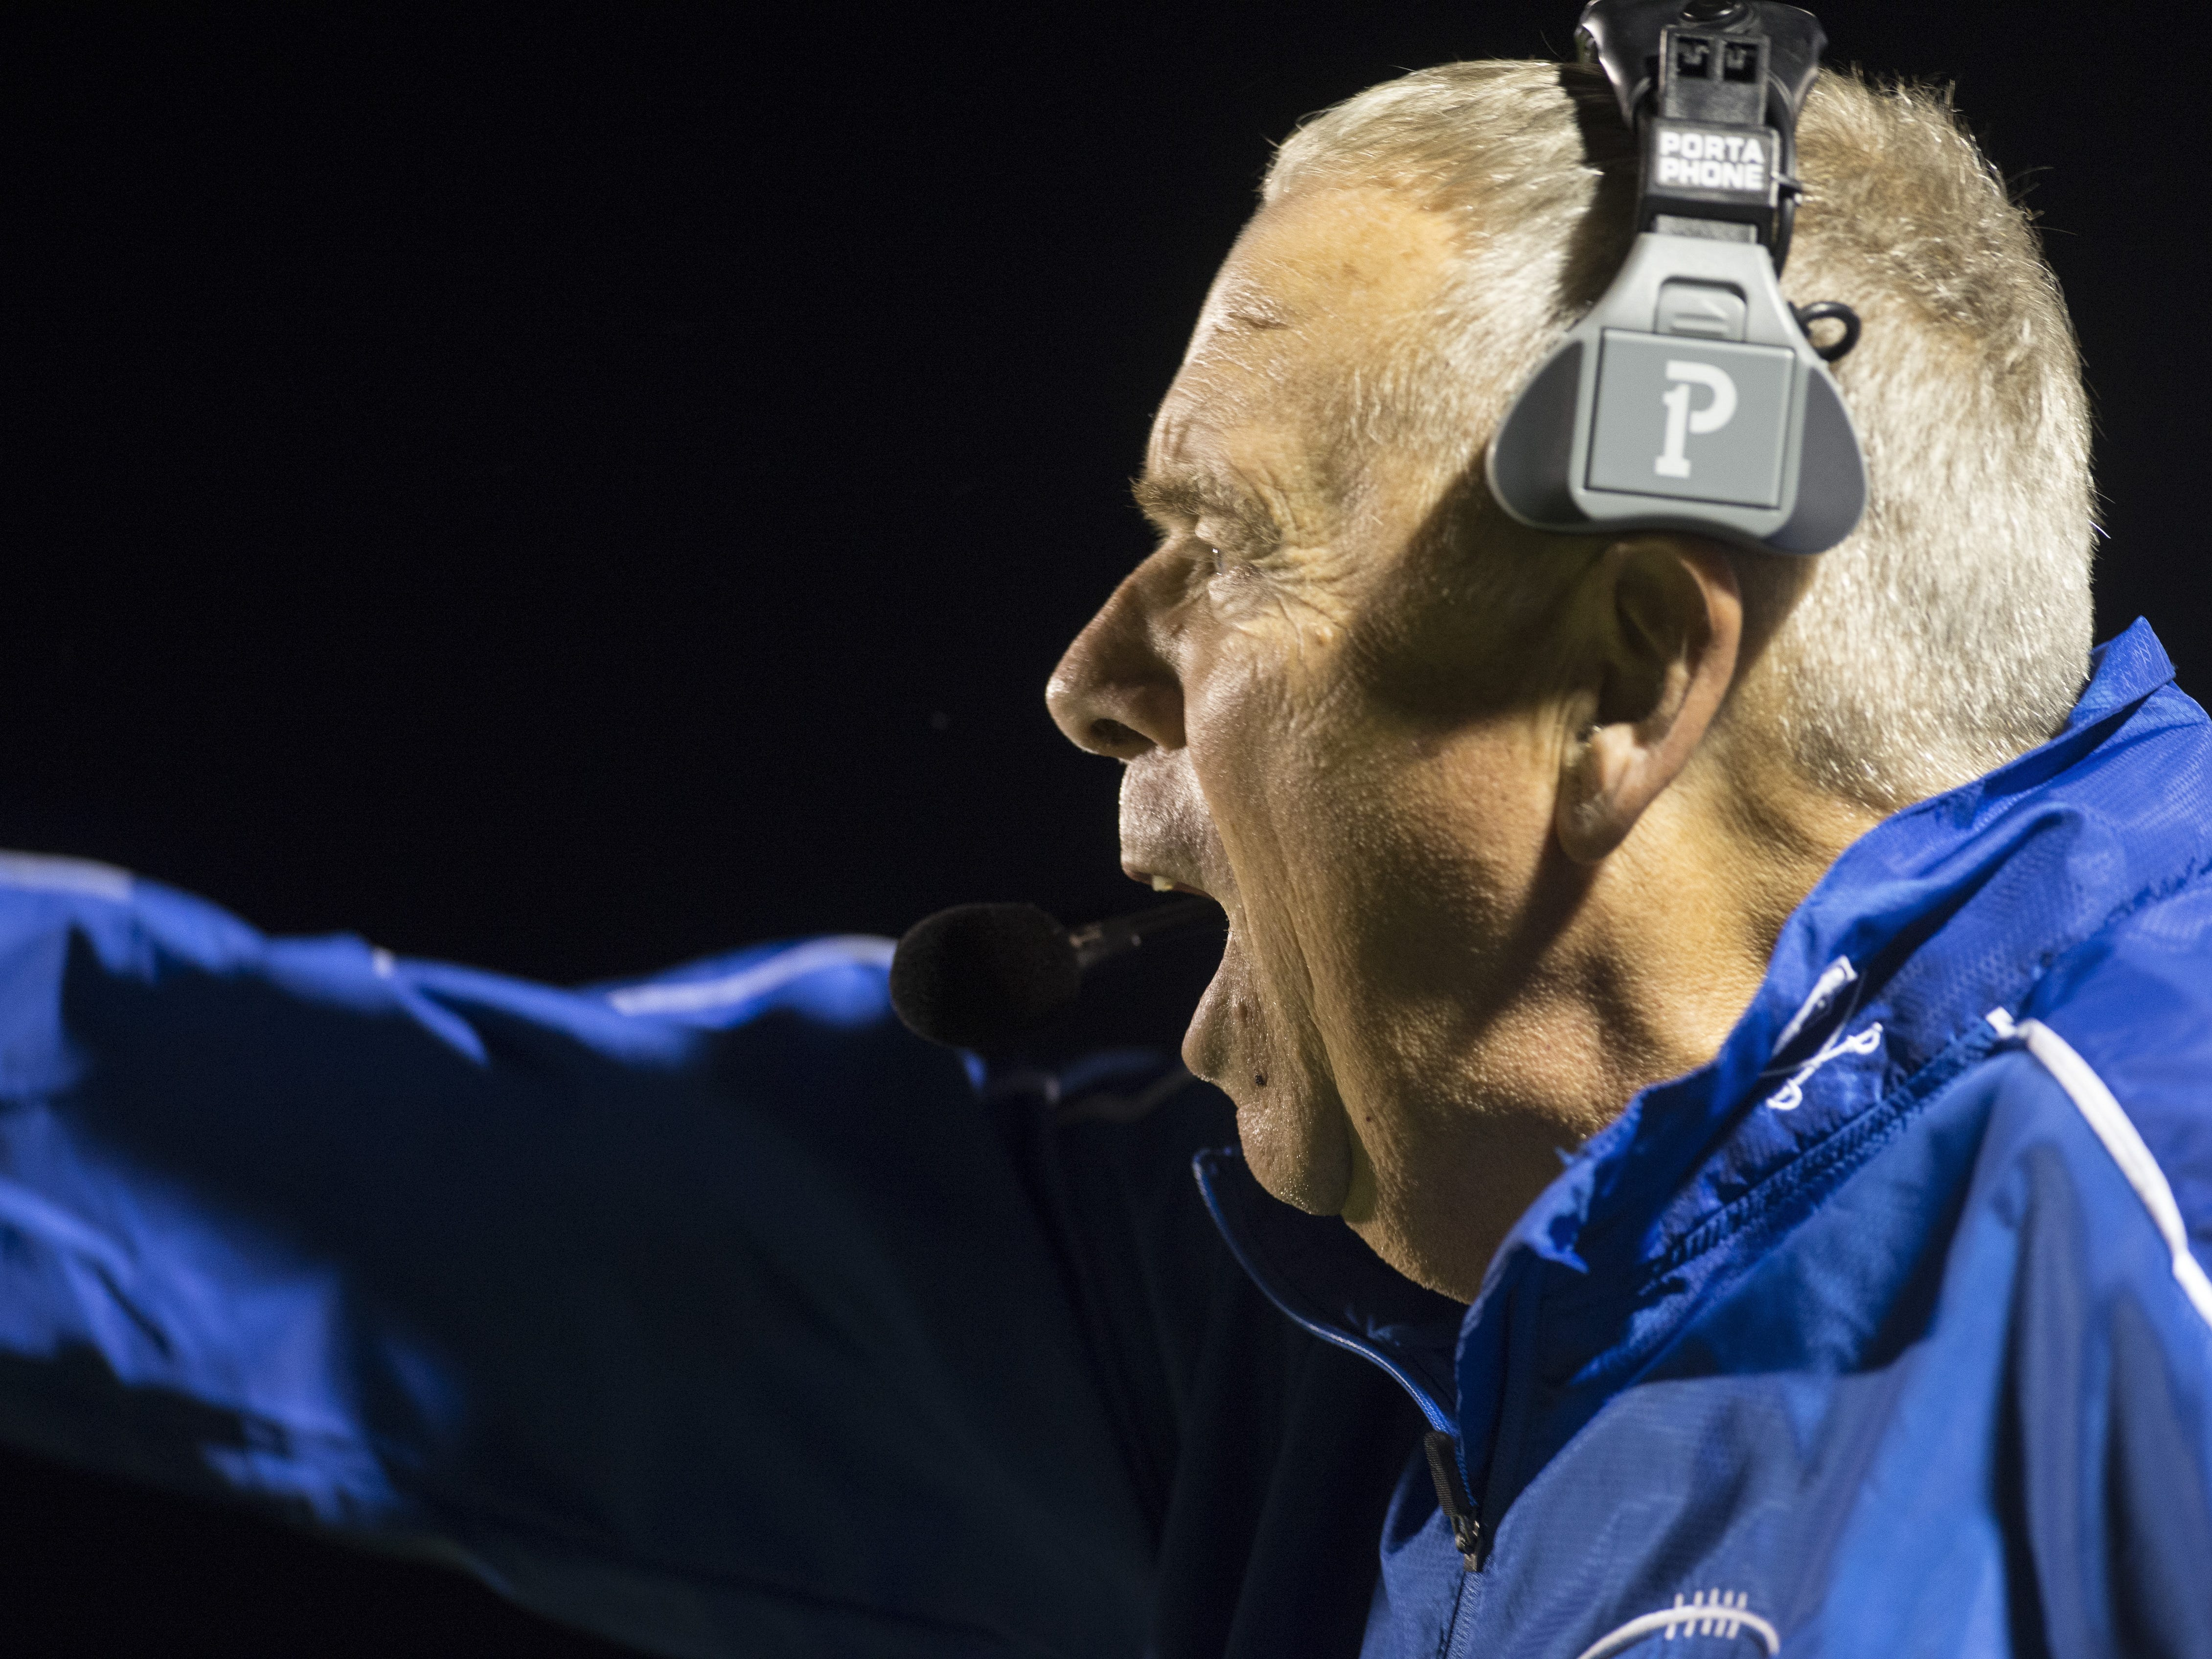 Chillicothe head coach Ron Hinton yells from the sidelies as the Cavaliers take on the  Hillsboro Indians at Richards Memorial Field on Friday, Sept. 28, 2018. The Cavaliers defeated the Indians 36-30.